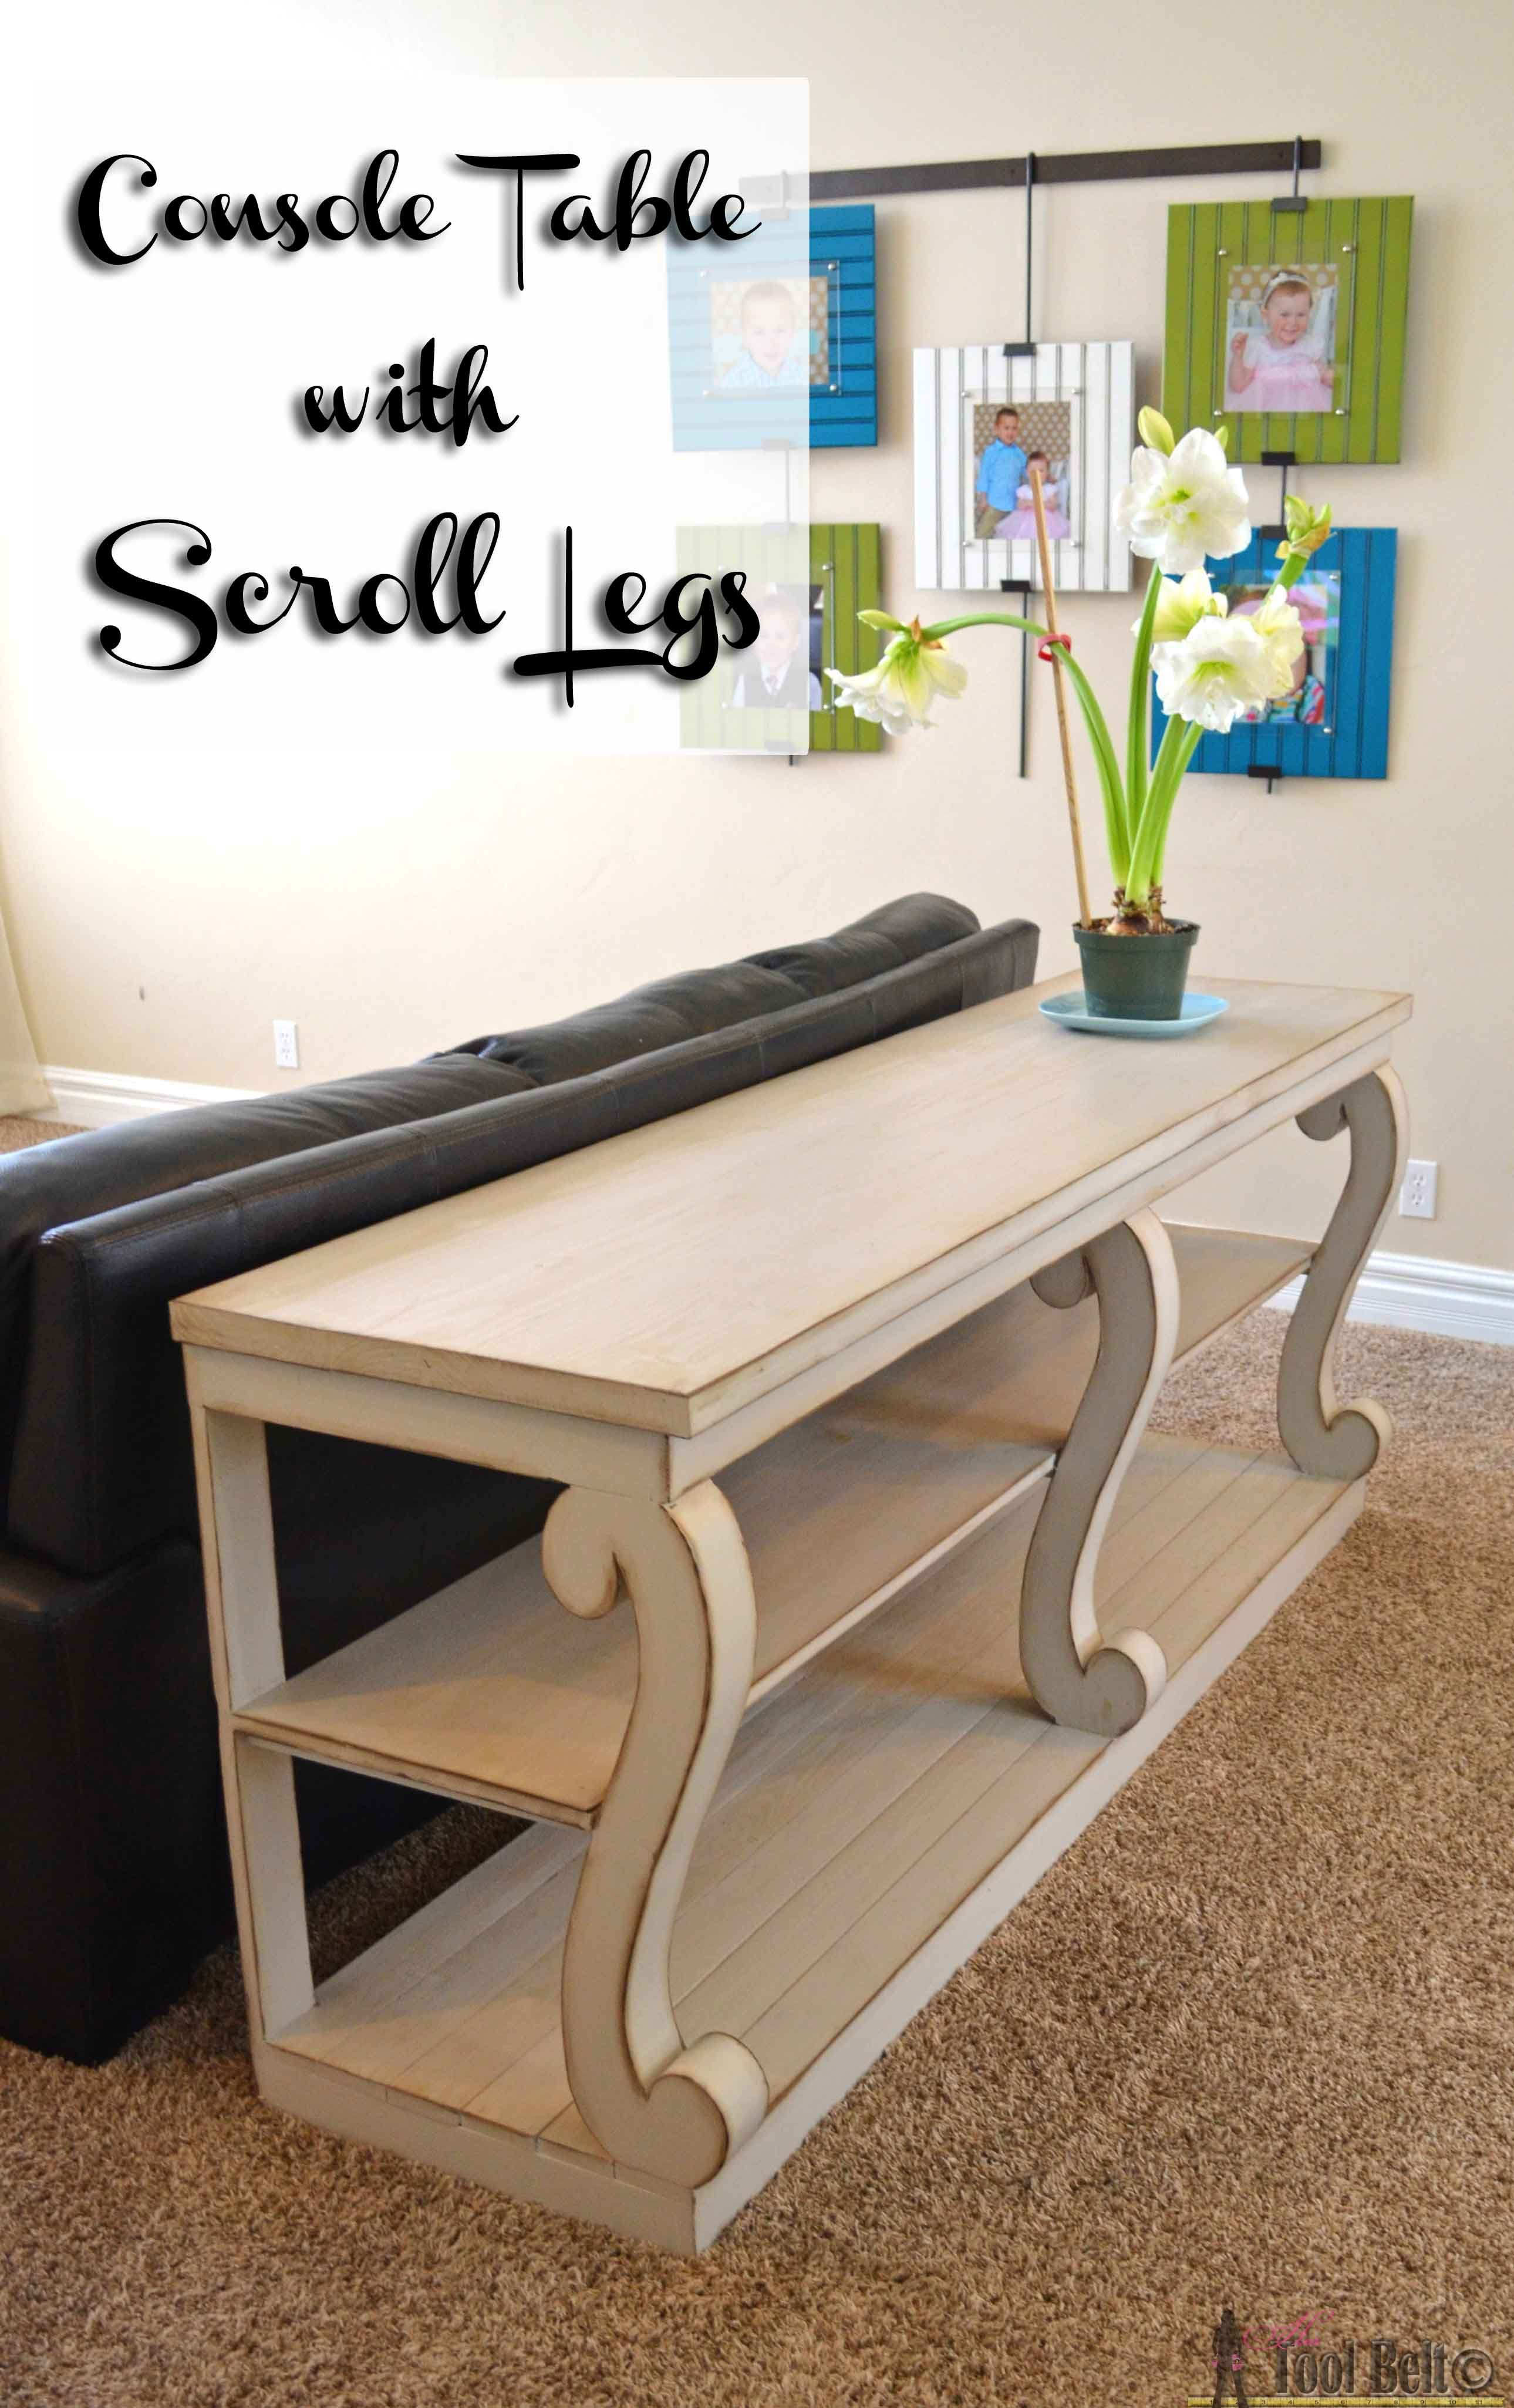 Free Woodworking Plans Console Table